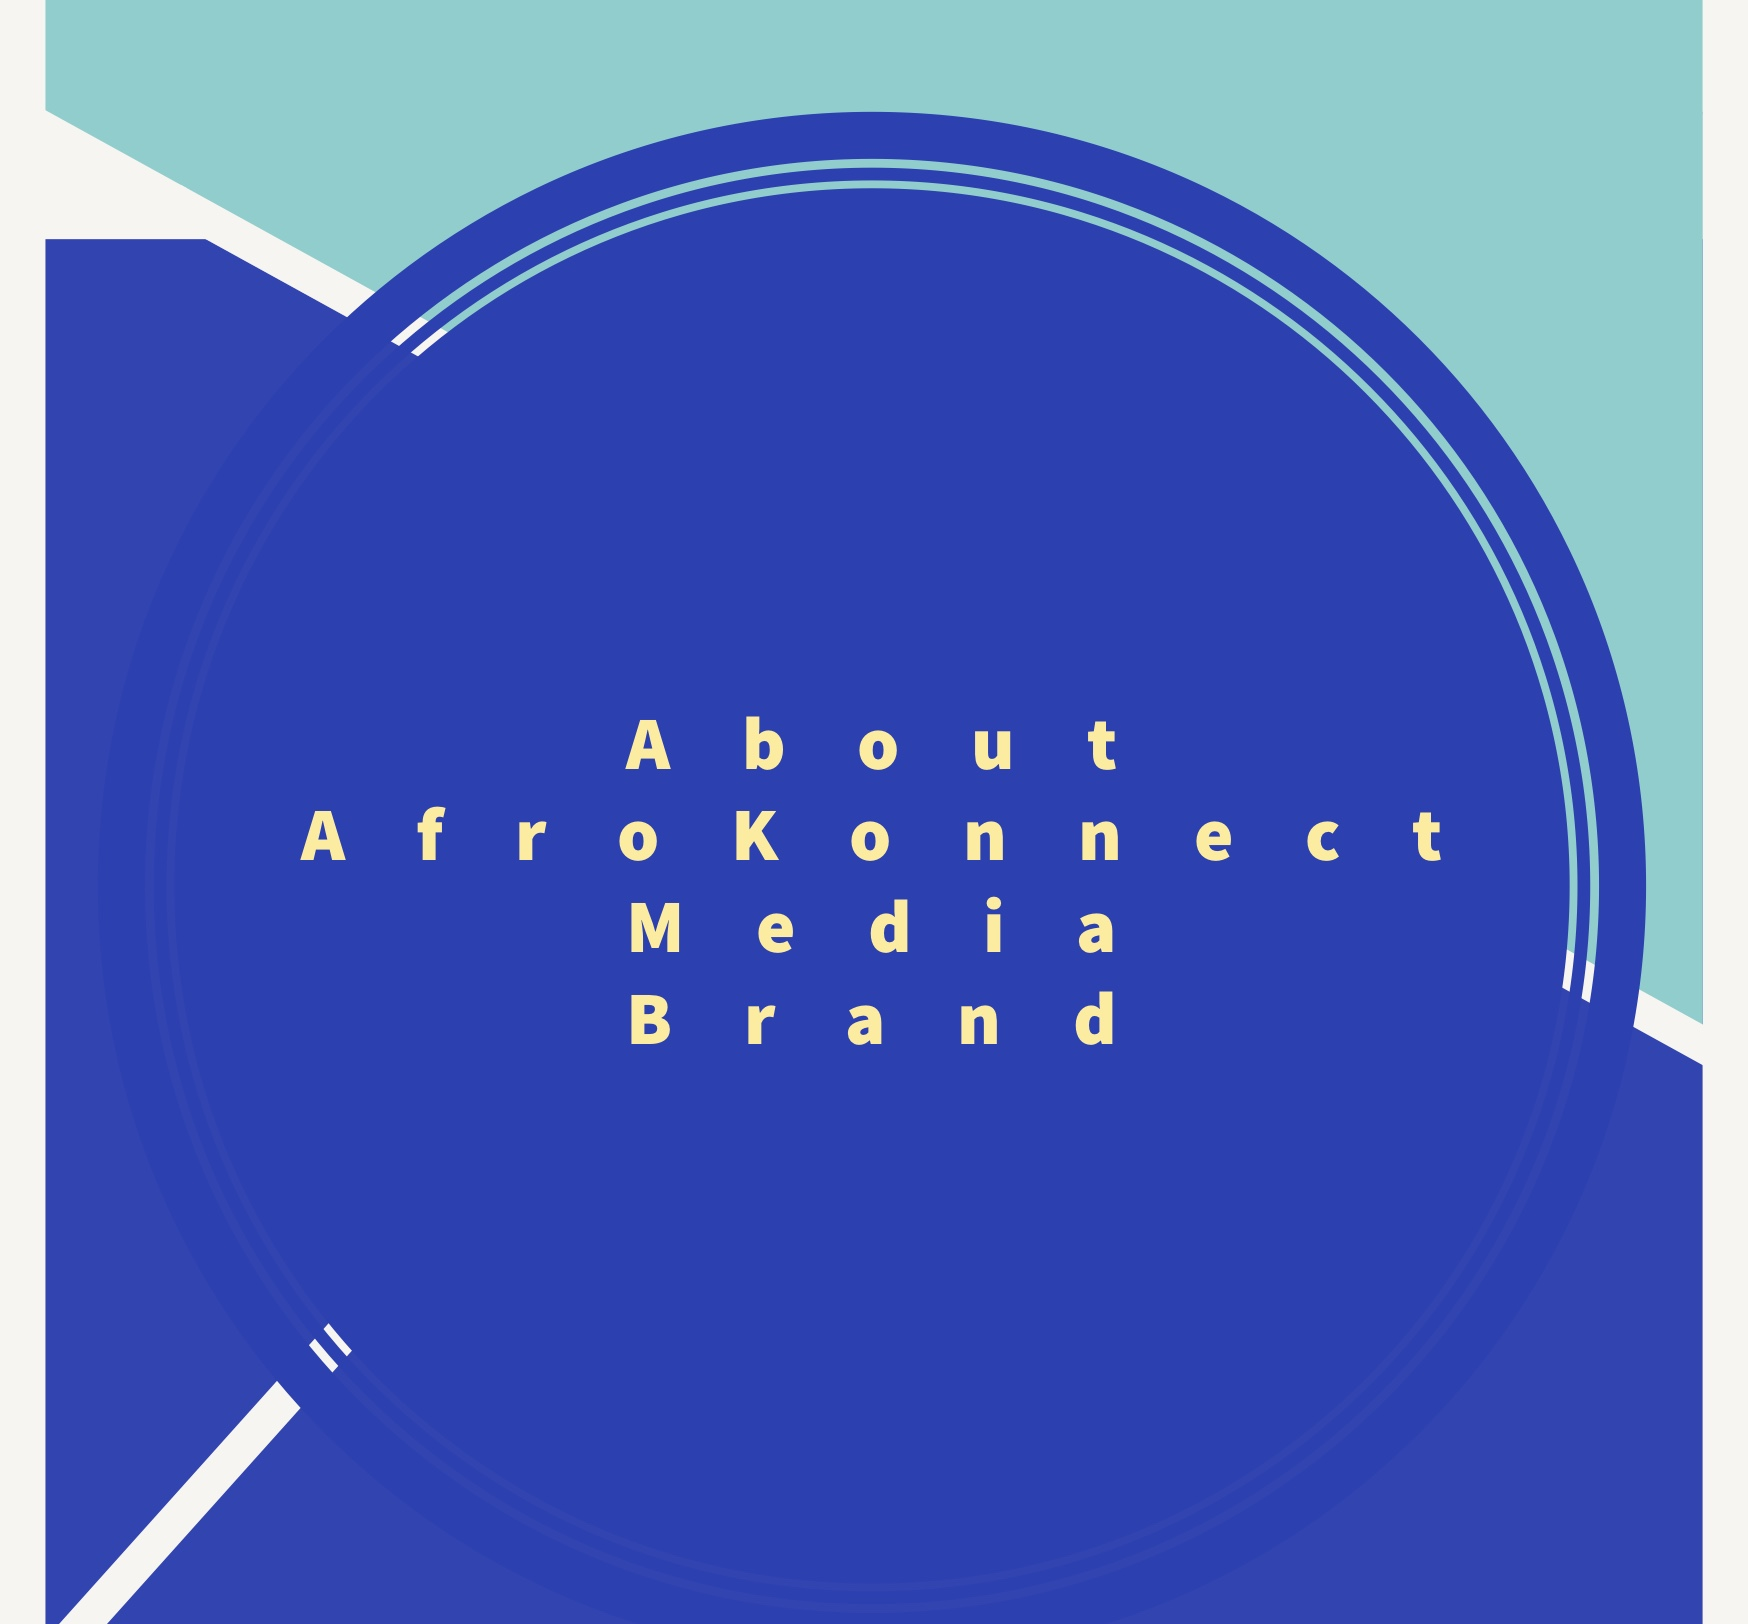 About Afrokonnect Media Brand